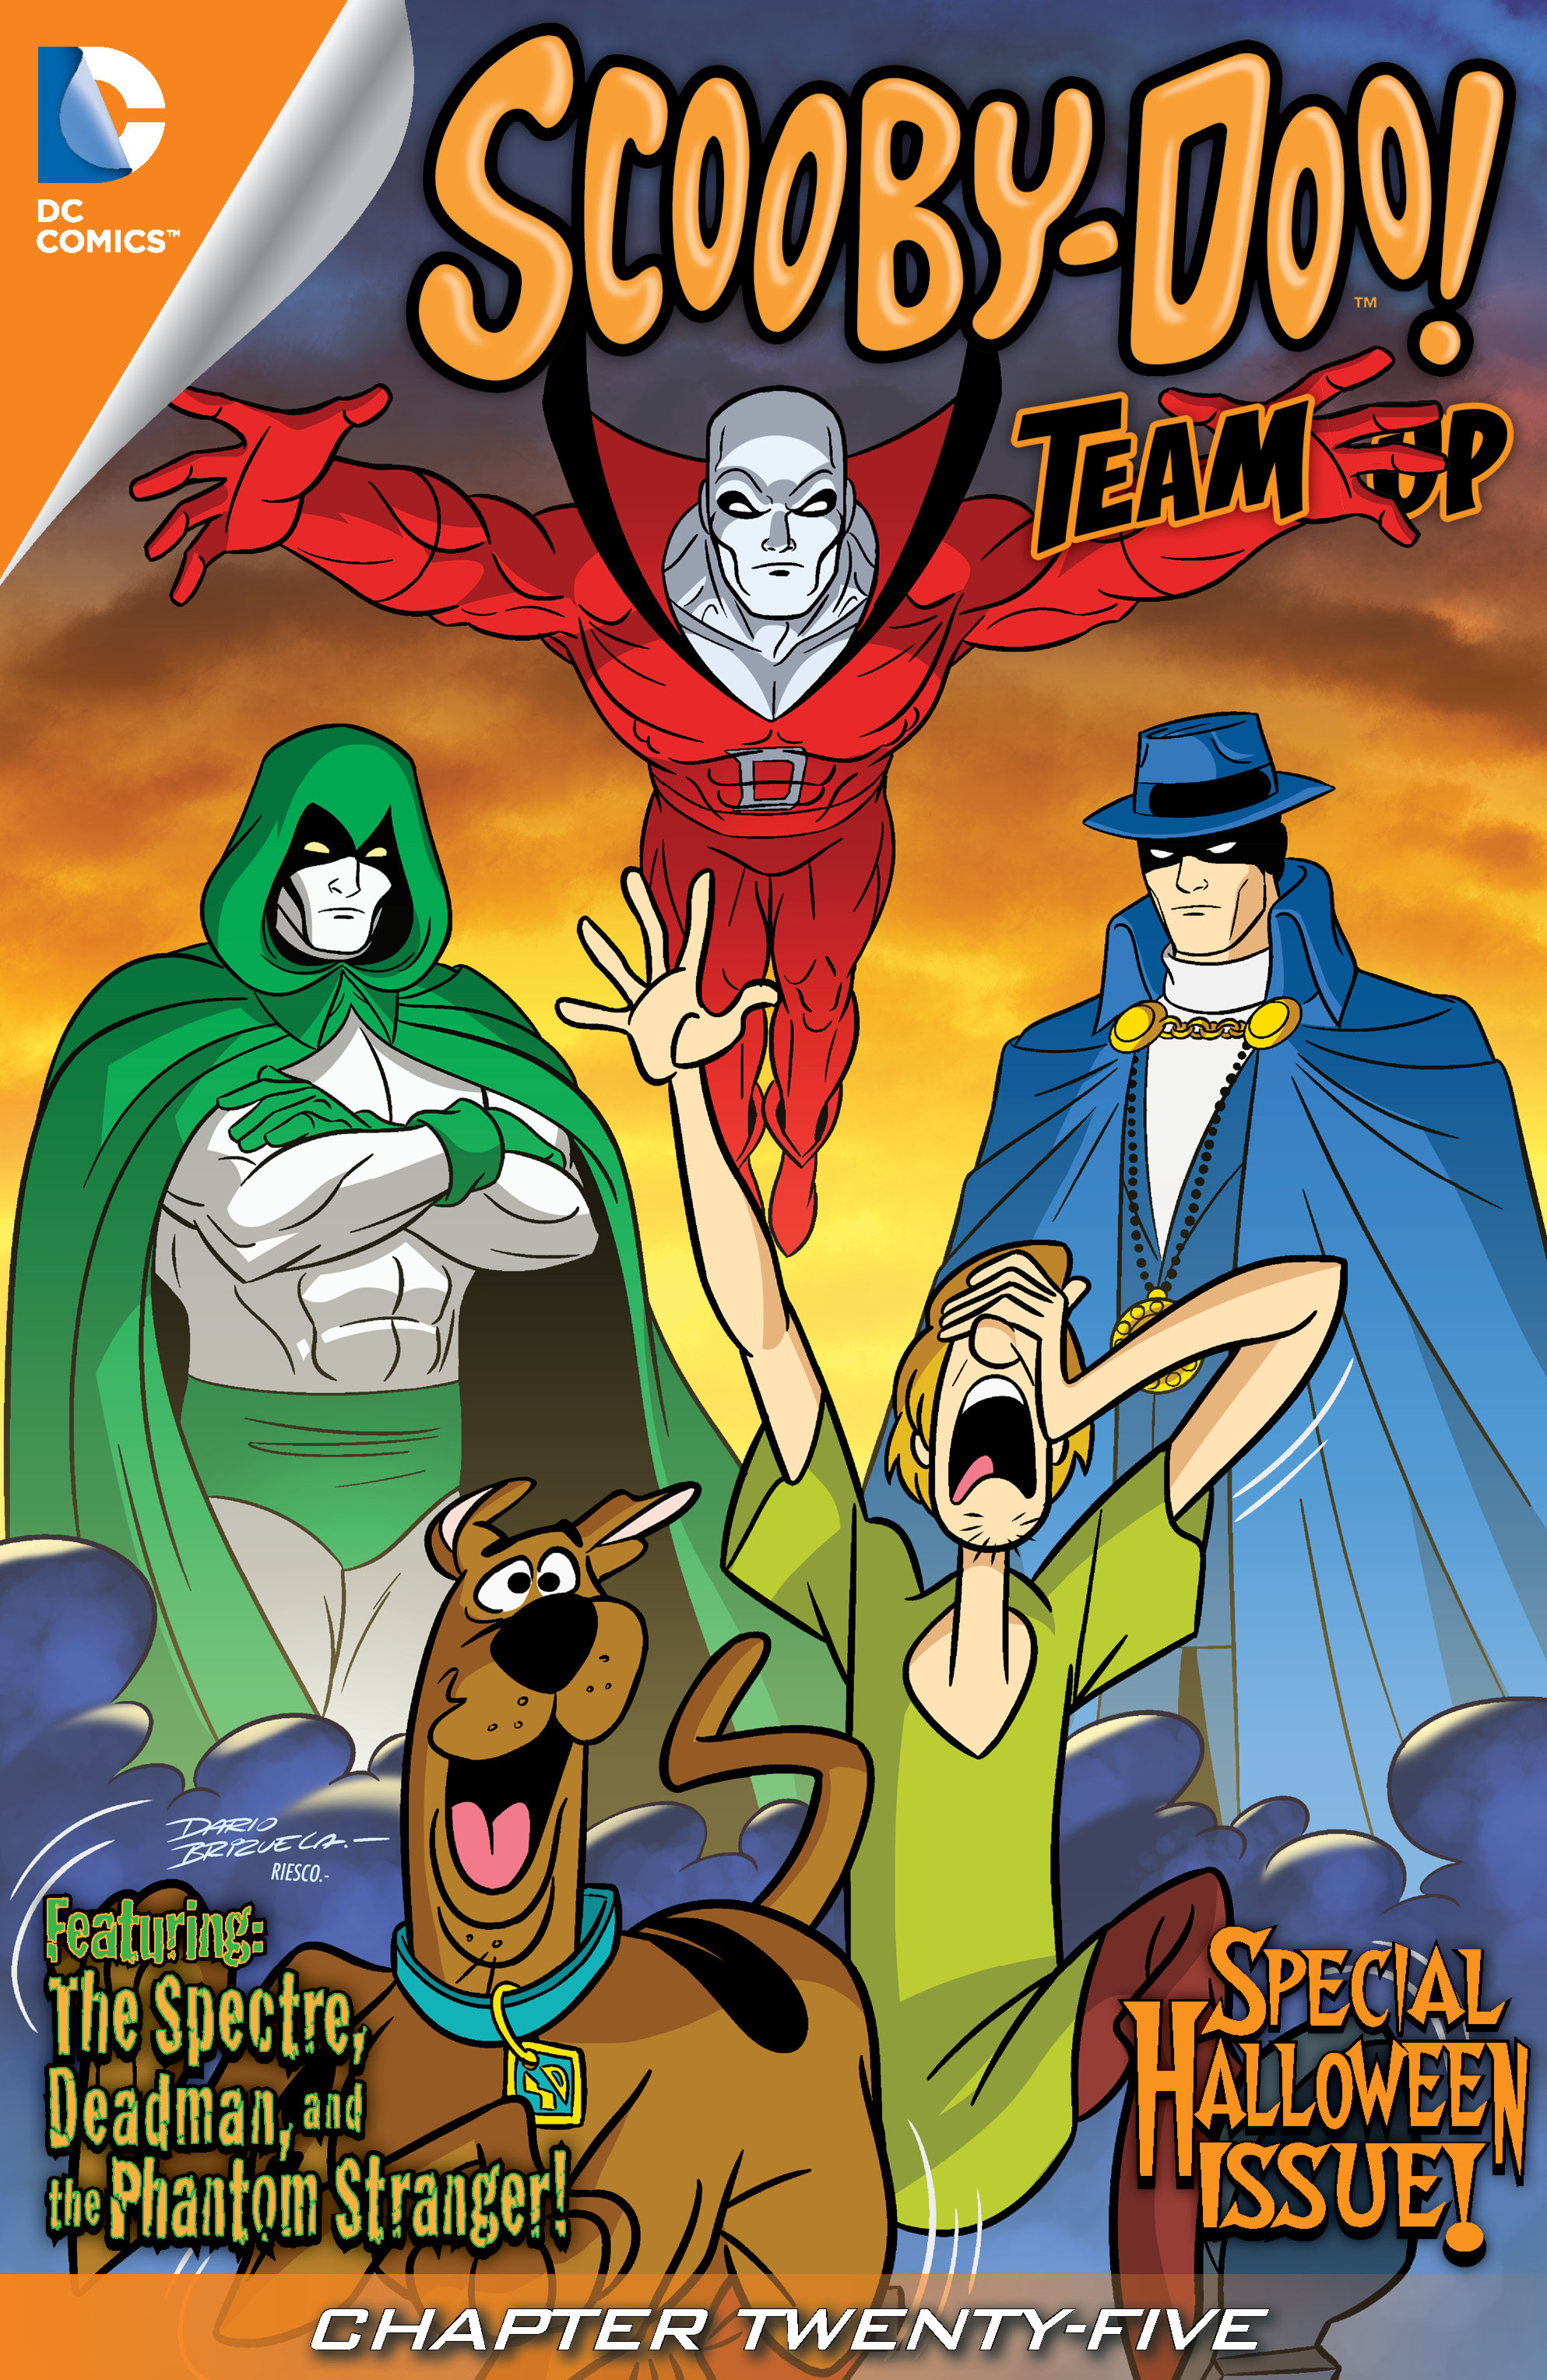 Read online Scooby-Doo! Team-Up comic -  Issue #25 - 2